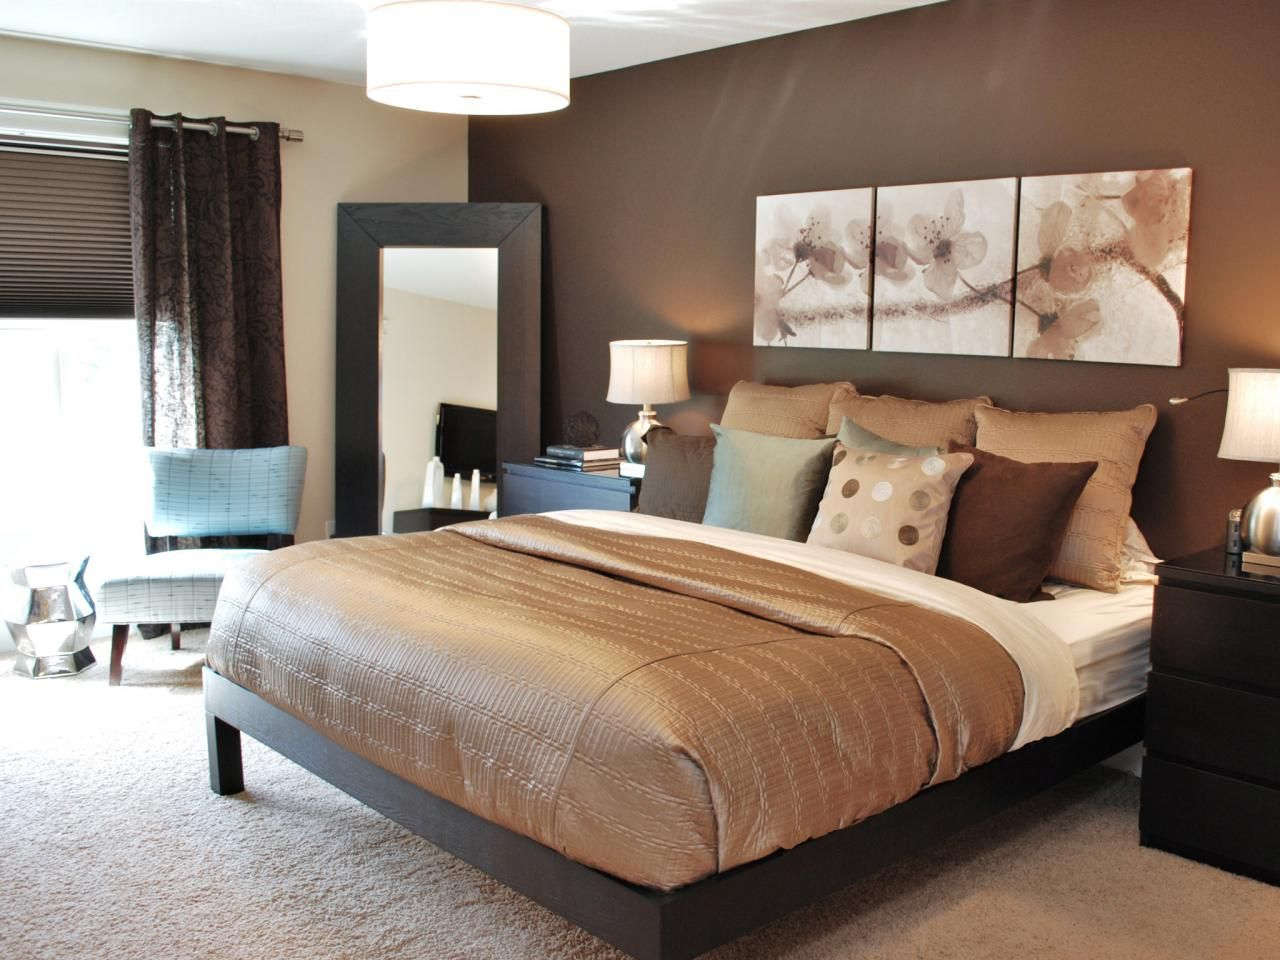 Good Bedroom Color Schemes Pictures Options Ideas Brown Master Bedroom Master Bedroom Colors Modern Bedroom Design